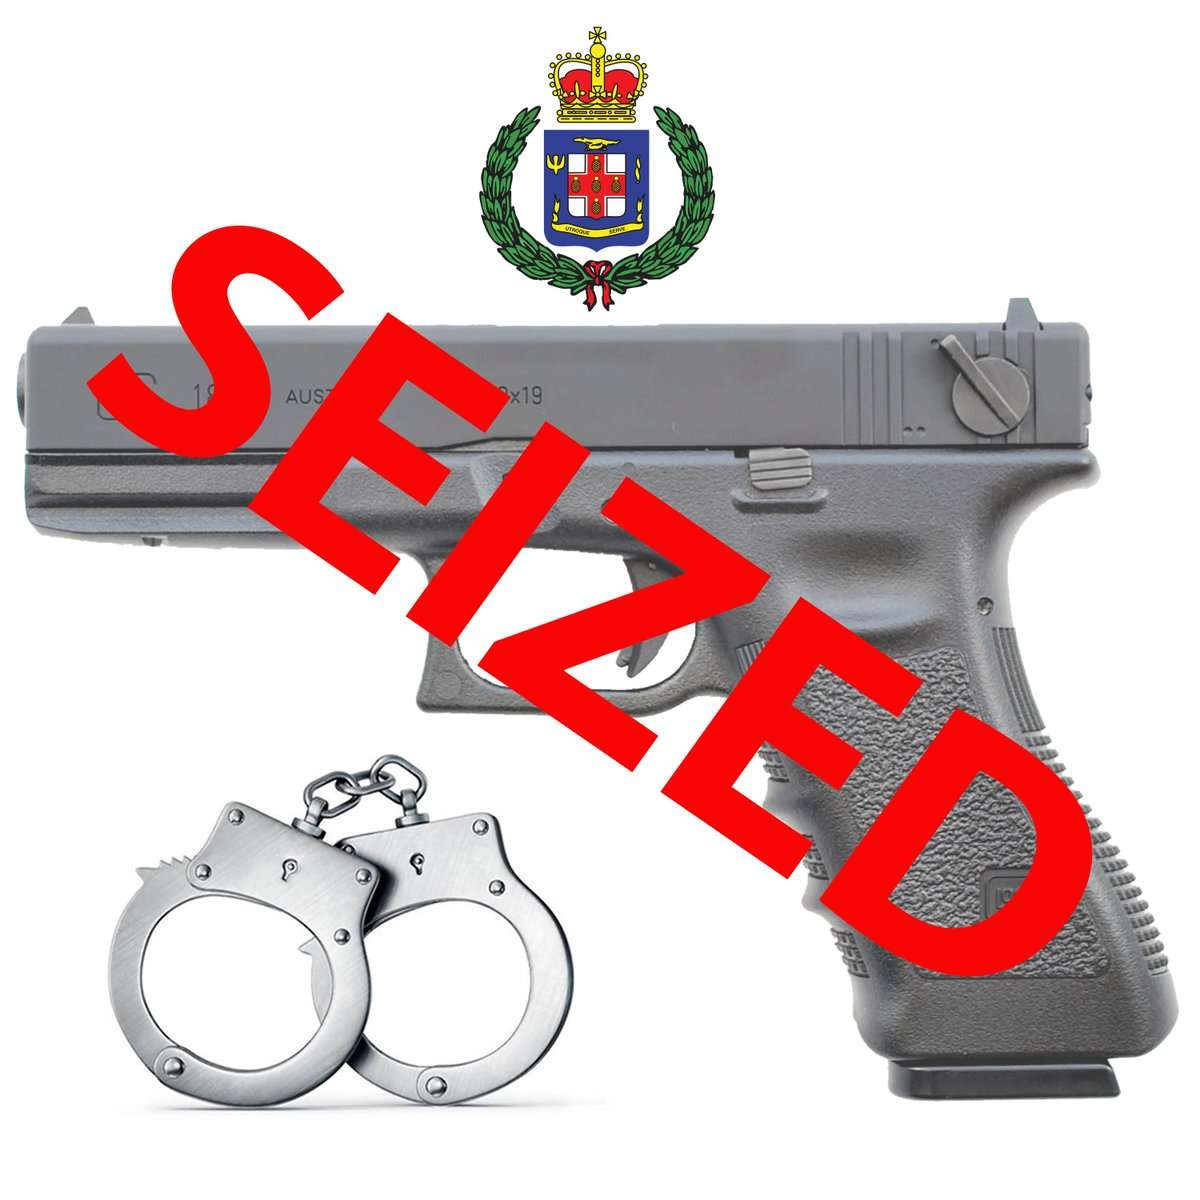 Two Pistols Seized in Separate Incidents in Westmoreland and Trelawny